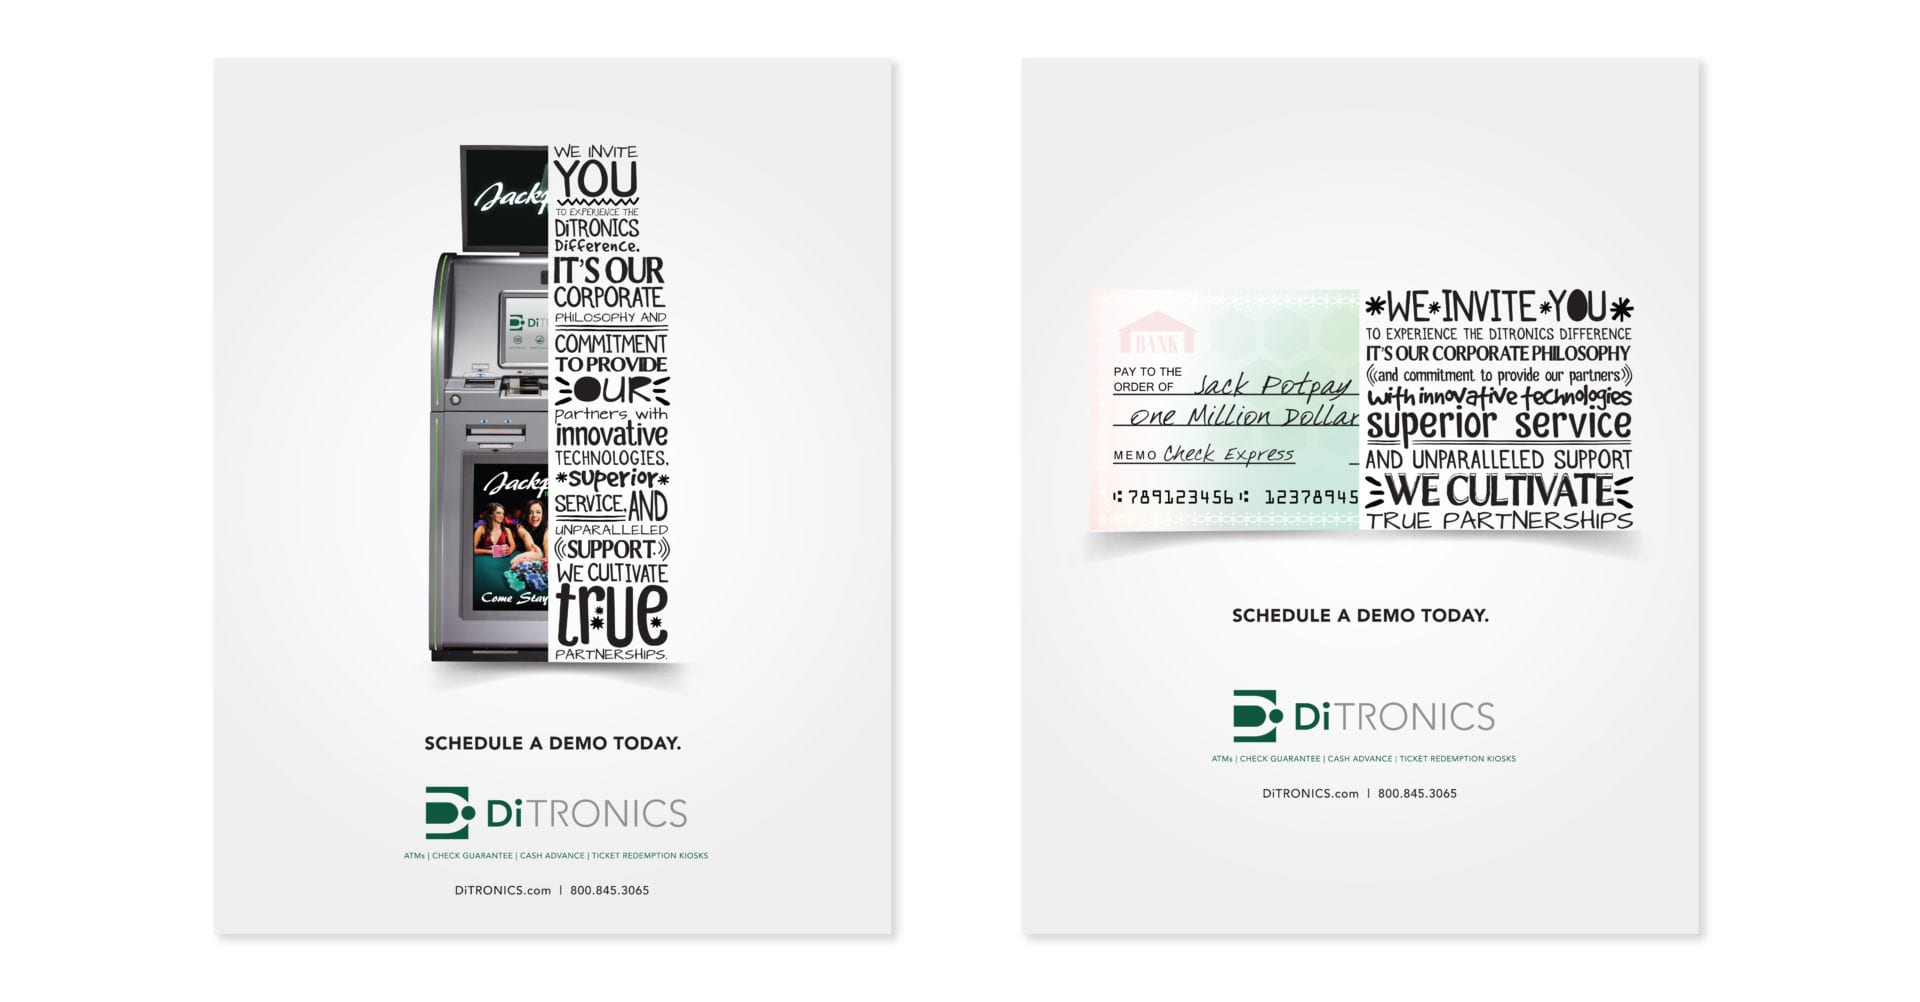 2 additional pages of the DiTronic Print Ad campaign